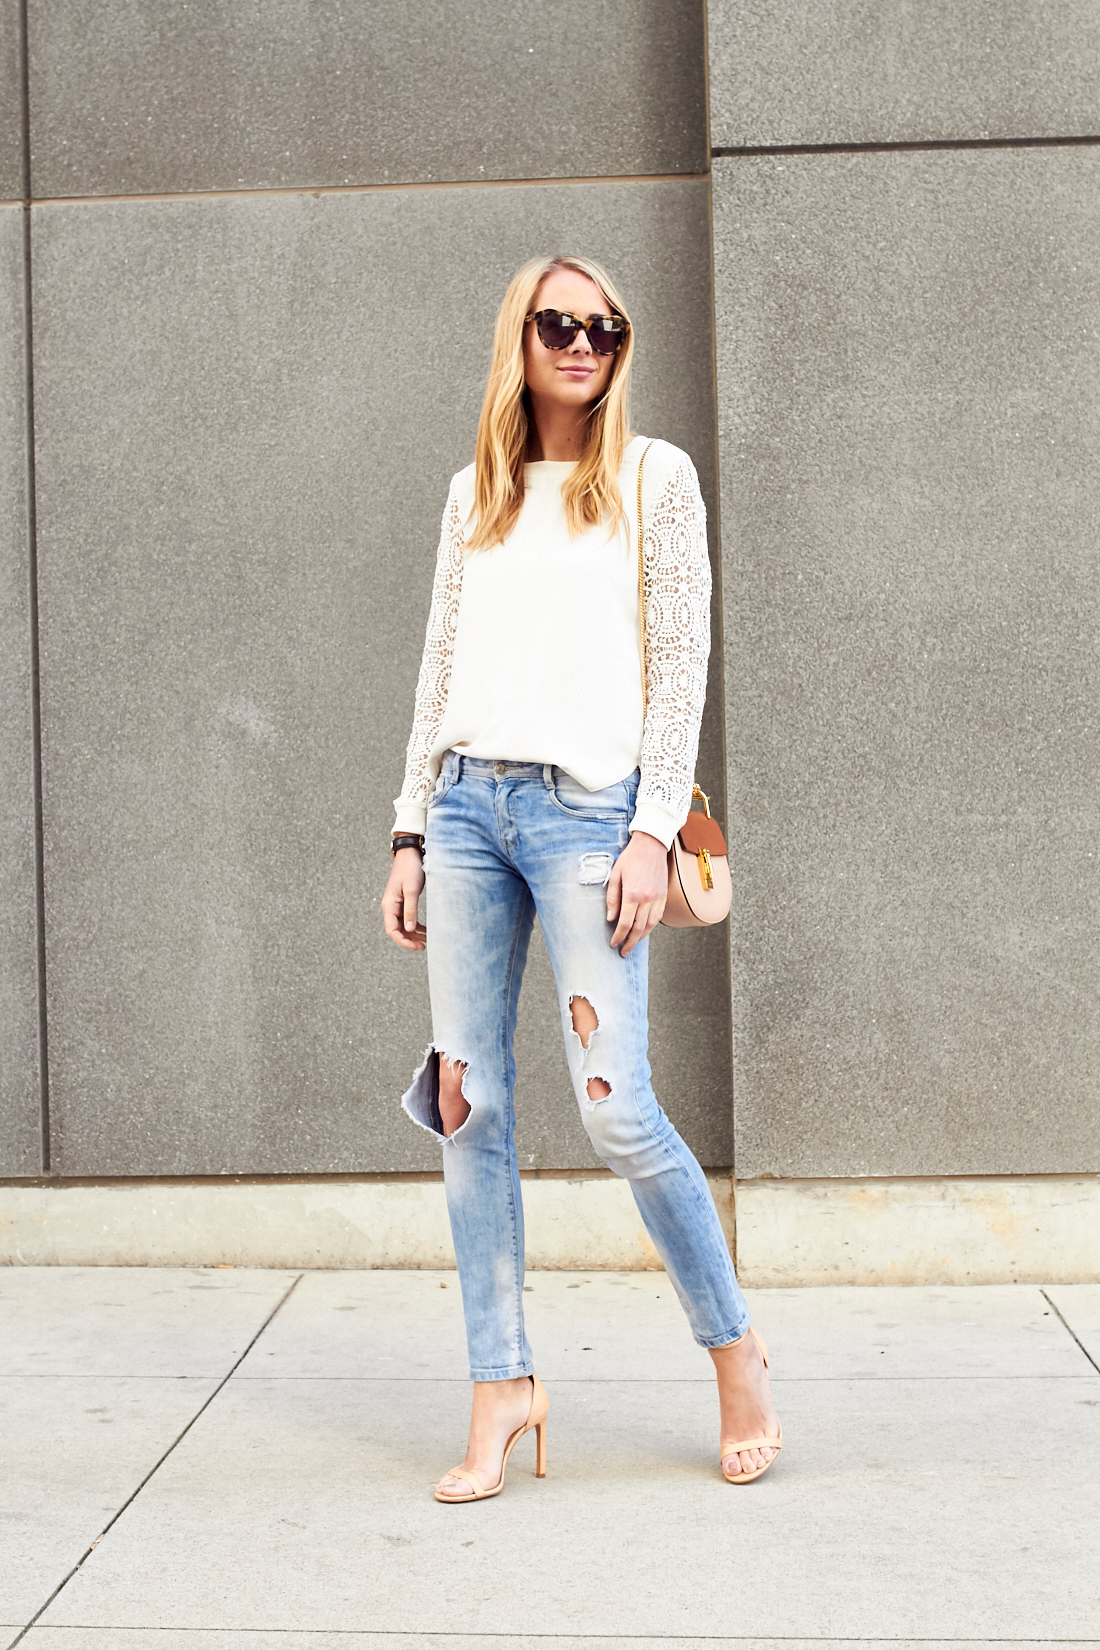 fashion_jackson_white_lace_sleeve_blosue_ripped_denim_skinny_jeans_nude_ankle_strap_heels_chloe_drew_handbag